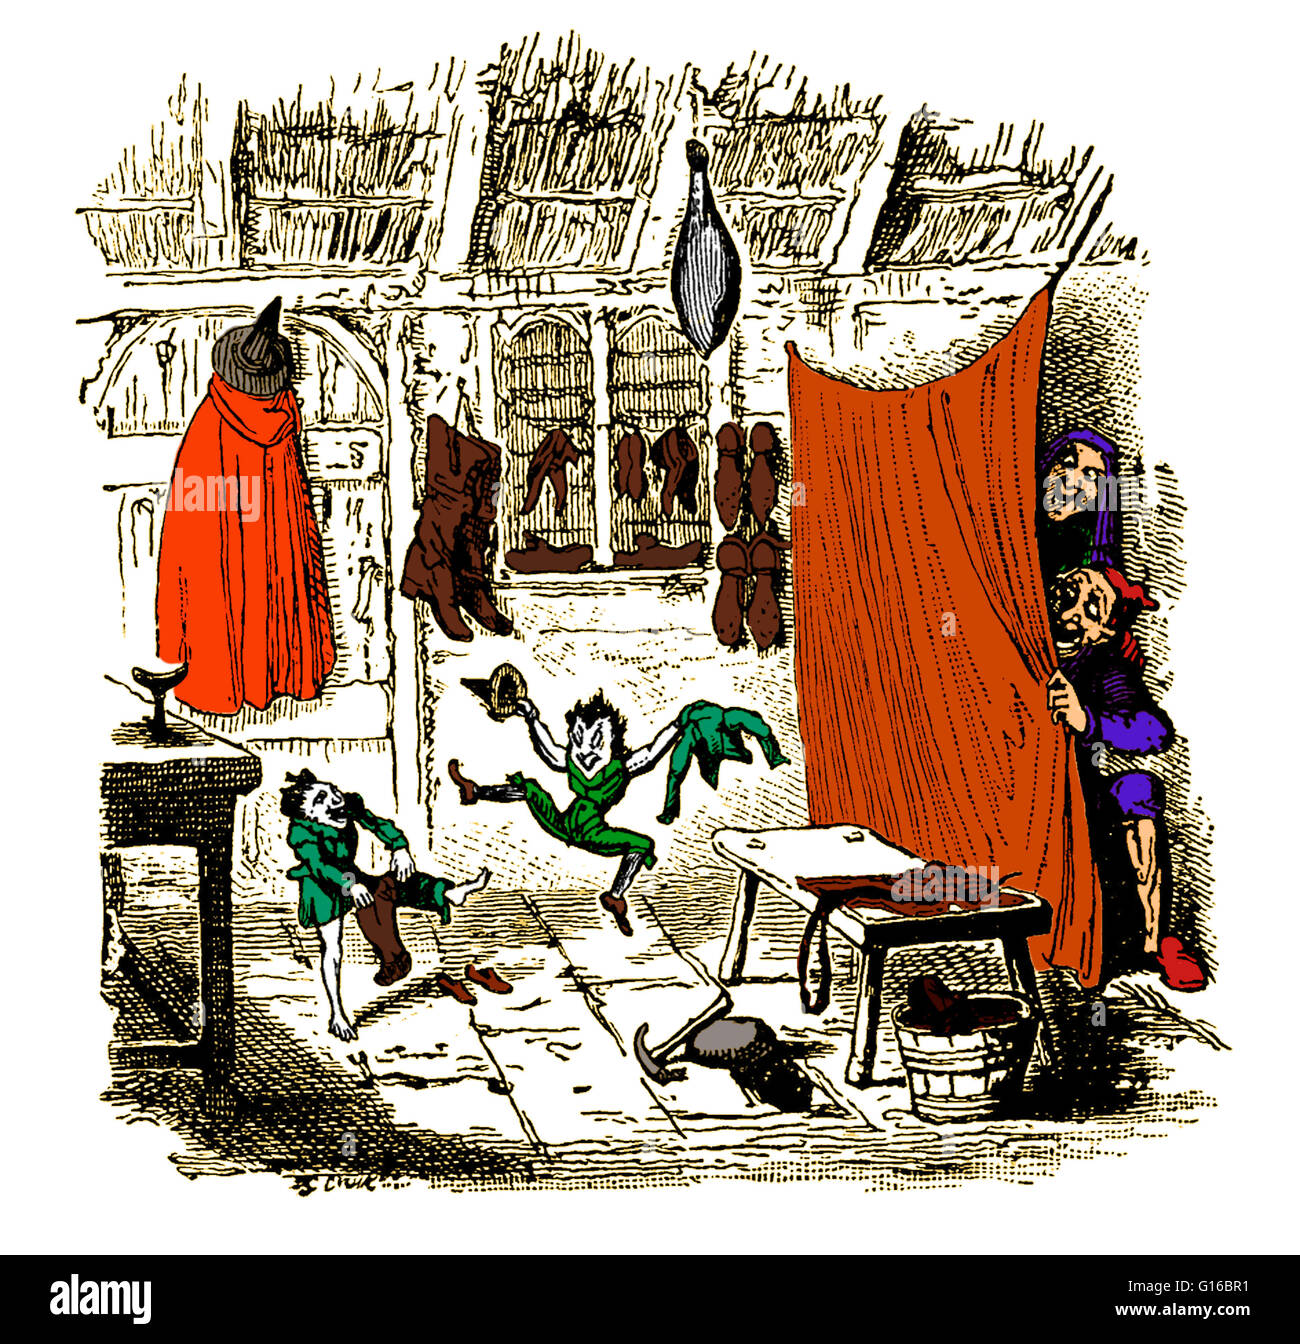 Color enhancement of an image depicting the old tale, 'The Elves and the Shoemaker'. This is an often copied - Stock Image